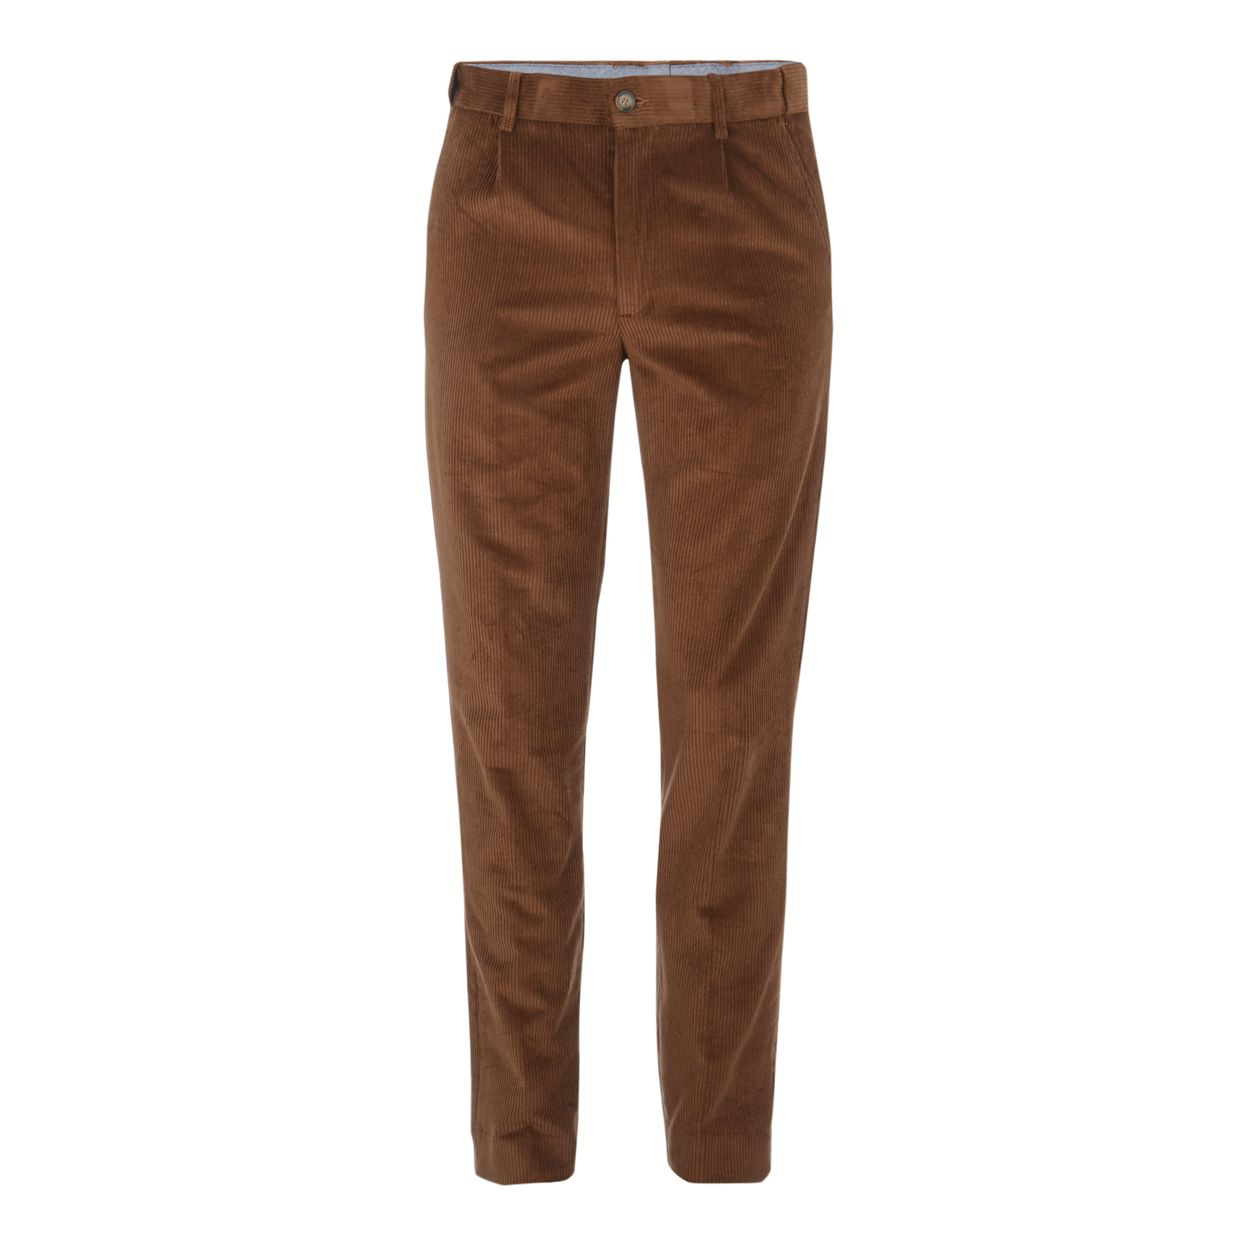 Maine New England Dark tan corduroy tailored fit trousers